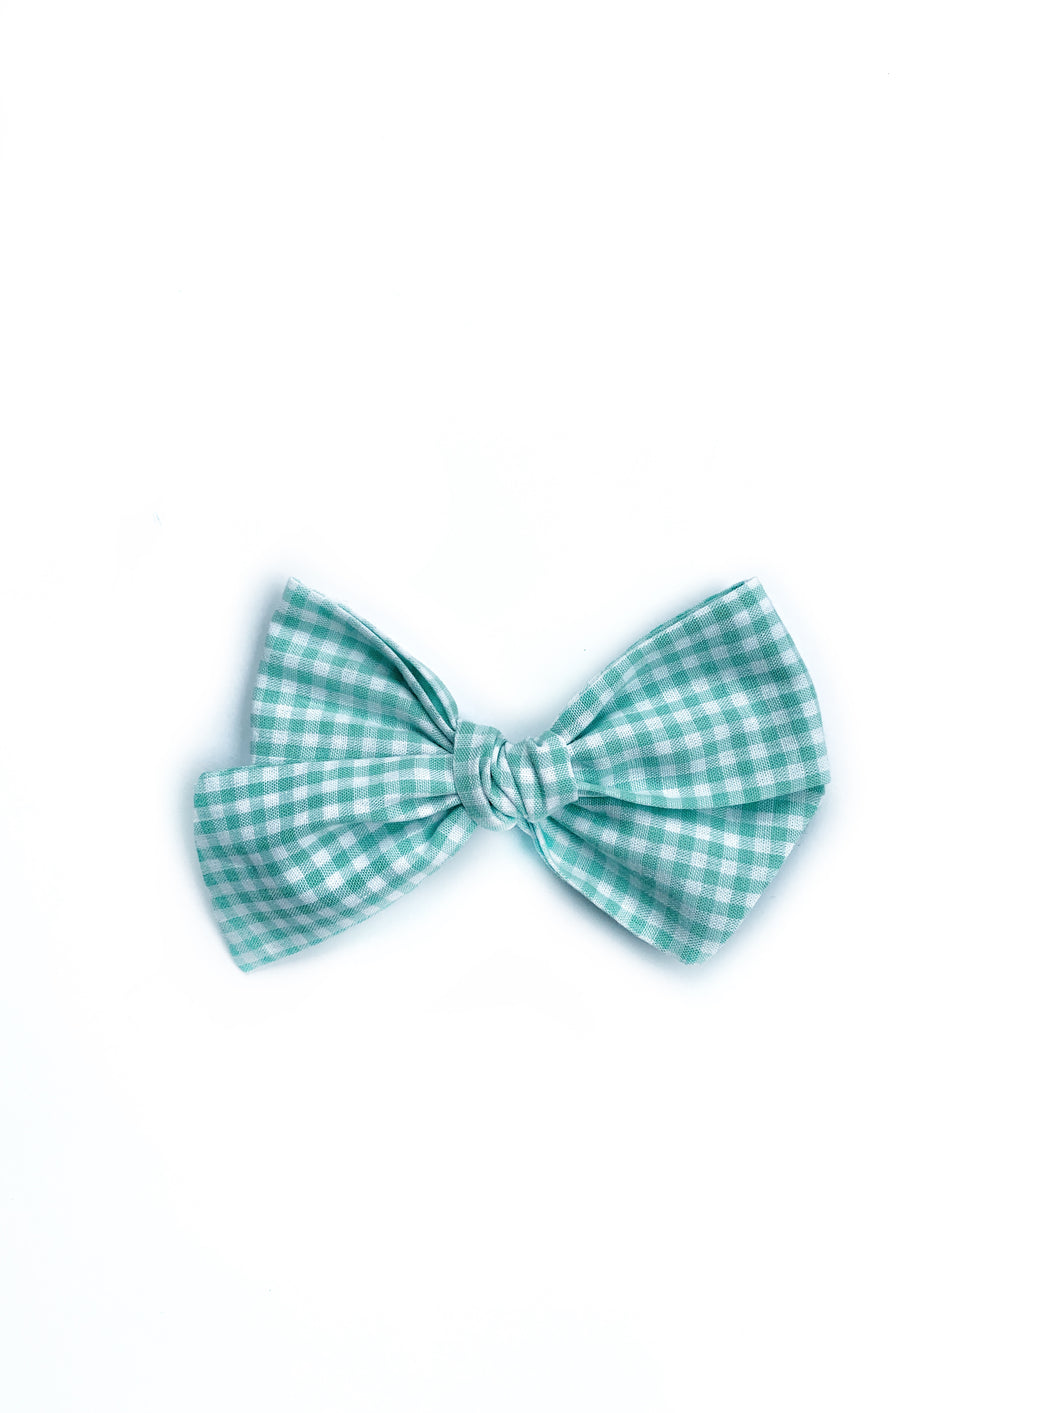 Chunky Knot // Green Gingham - Knots and Dots